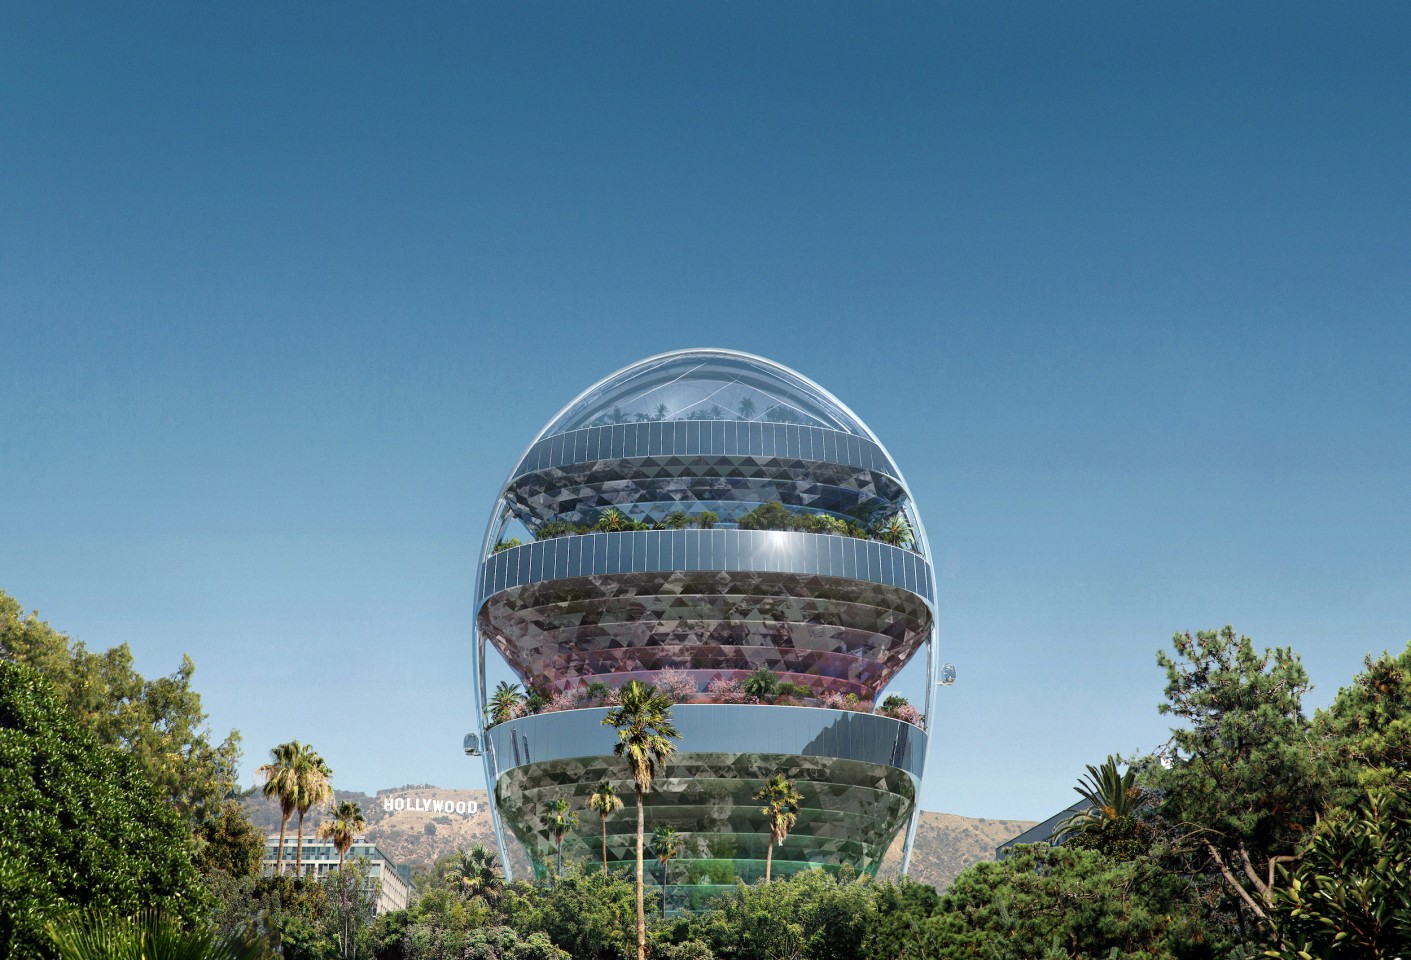 The Star's overall form is inspired by the Hollywood Hills